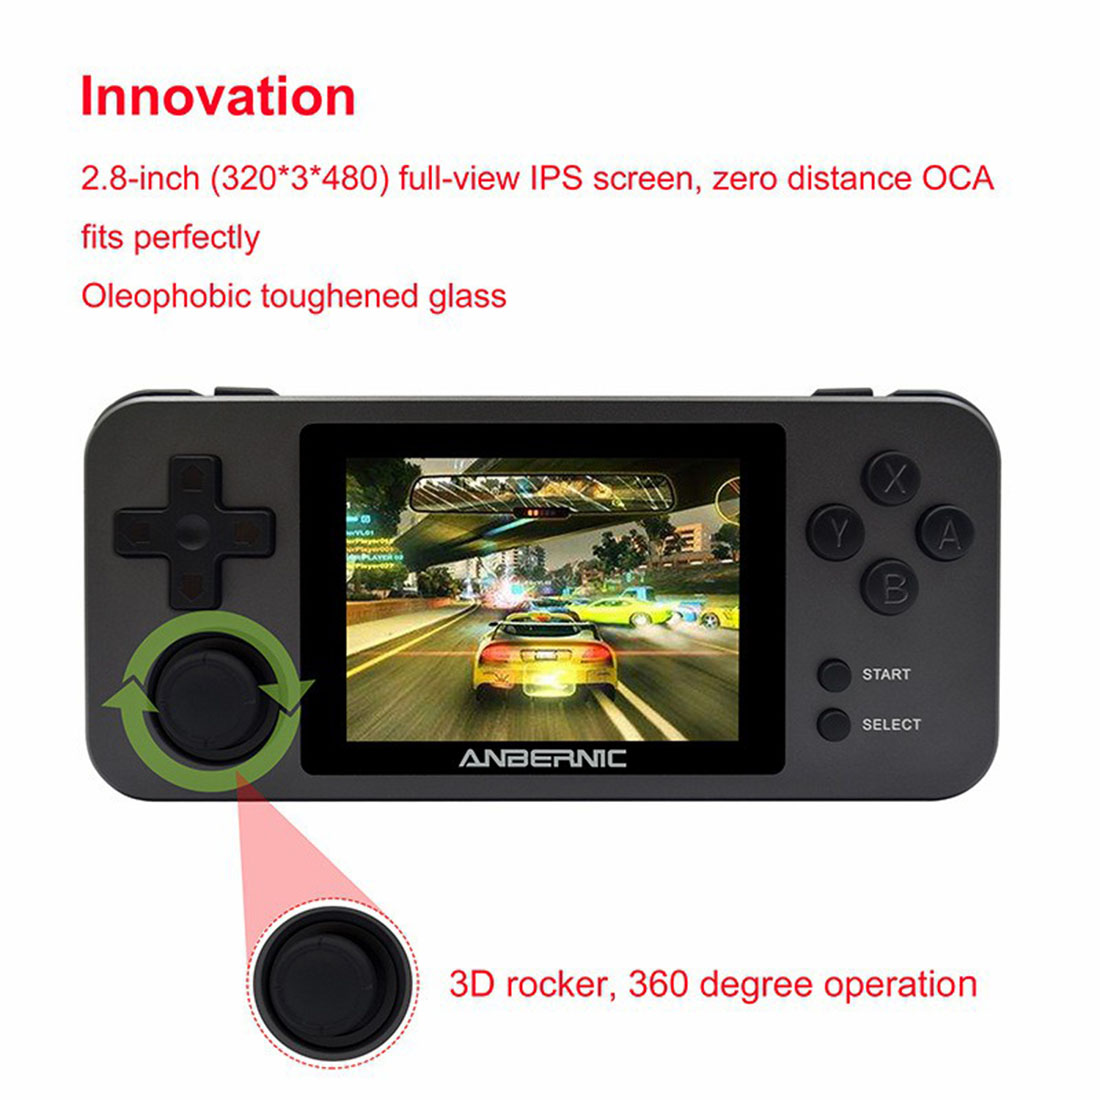 Anbernic RG280M Handheld Open Source Retro Game Console Built-in 10,000 Games Metal Version